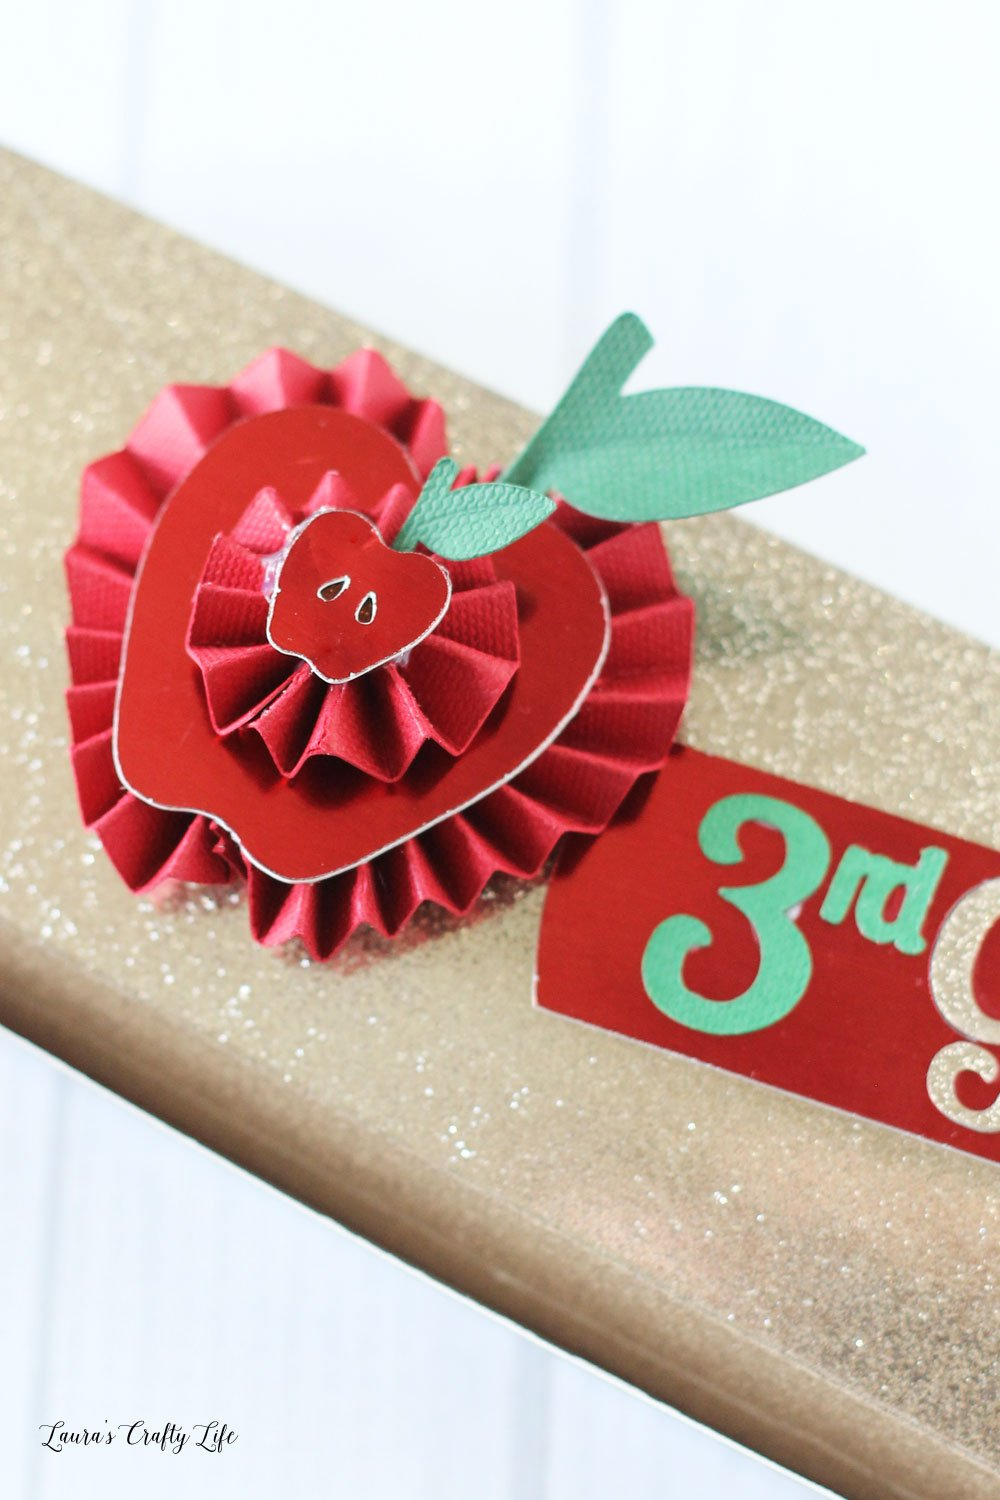 Apple rosette made with the Cricut Scoring Wheel